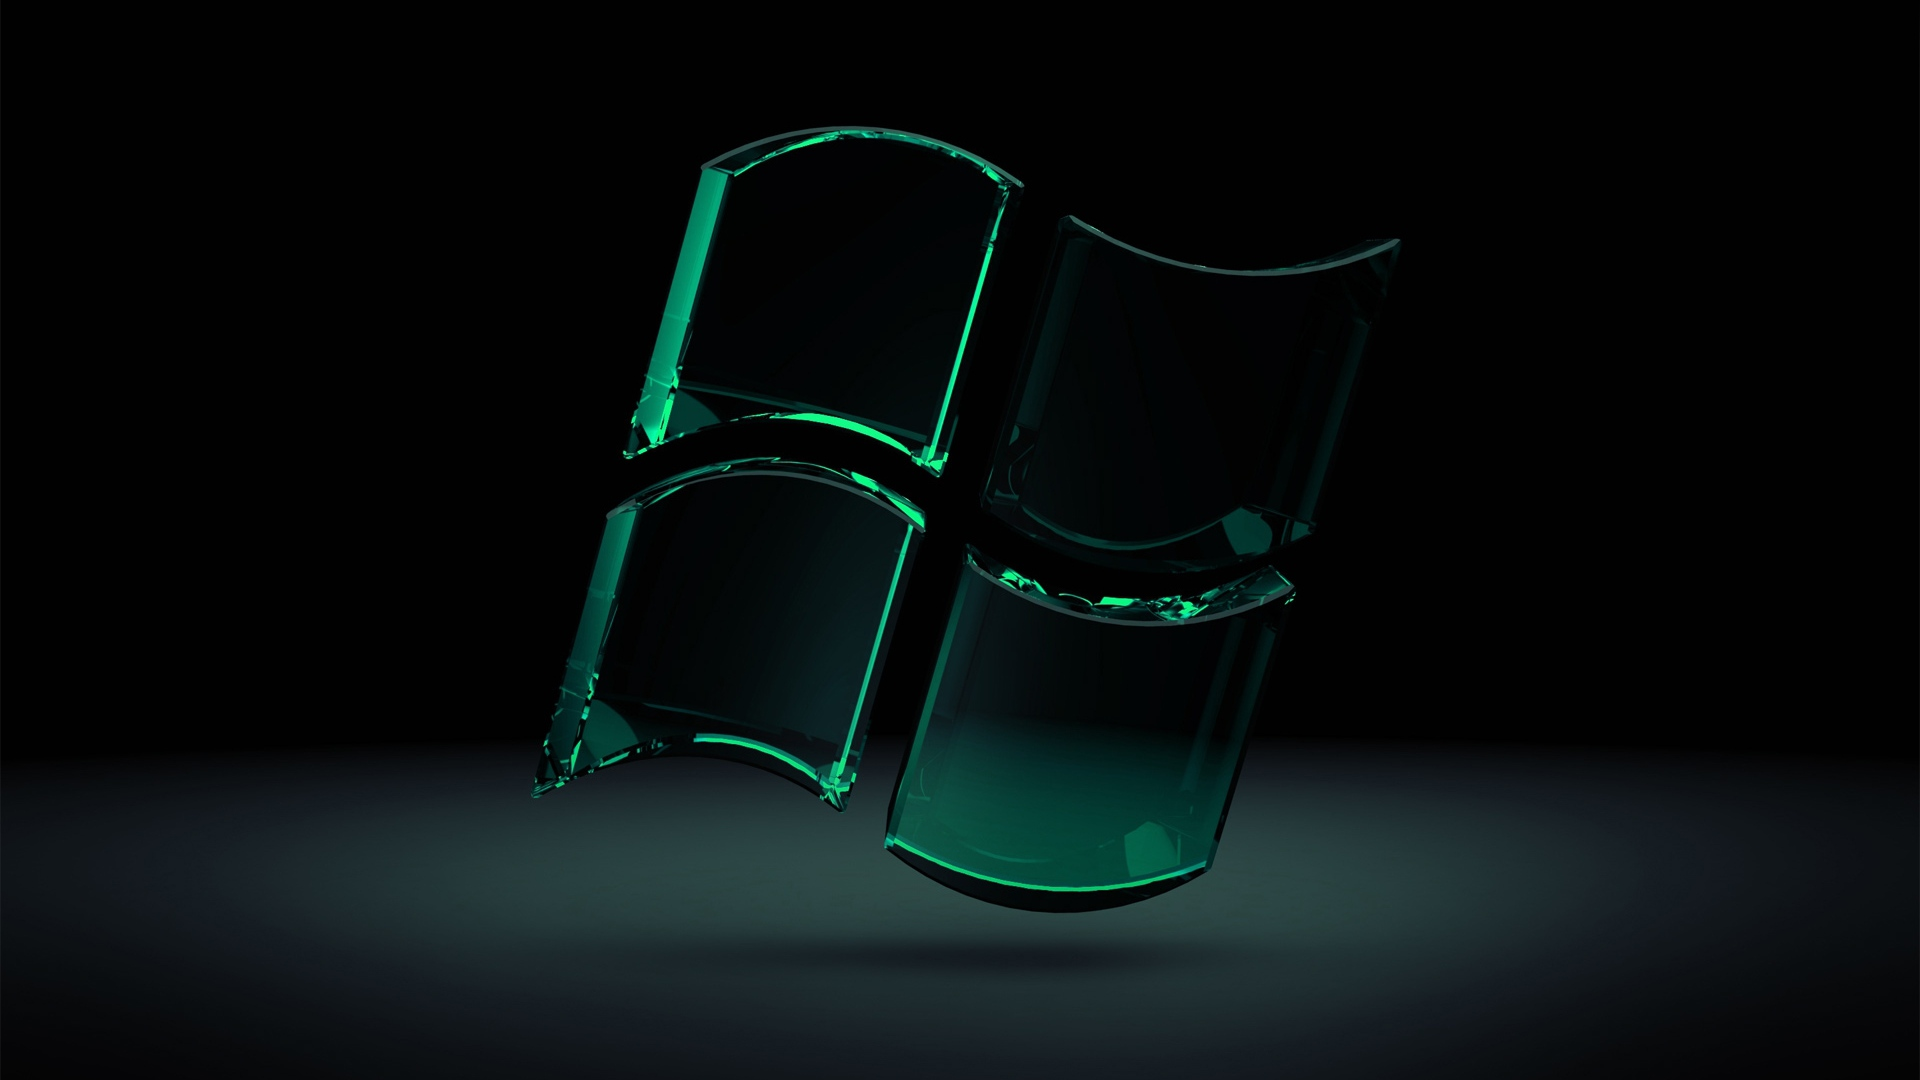 download wallpaper 1920x1080 windows green black glass